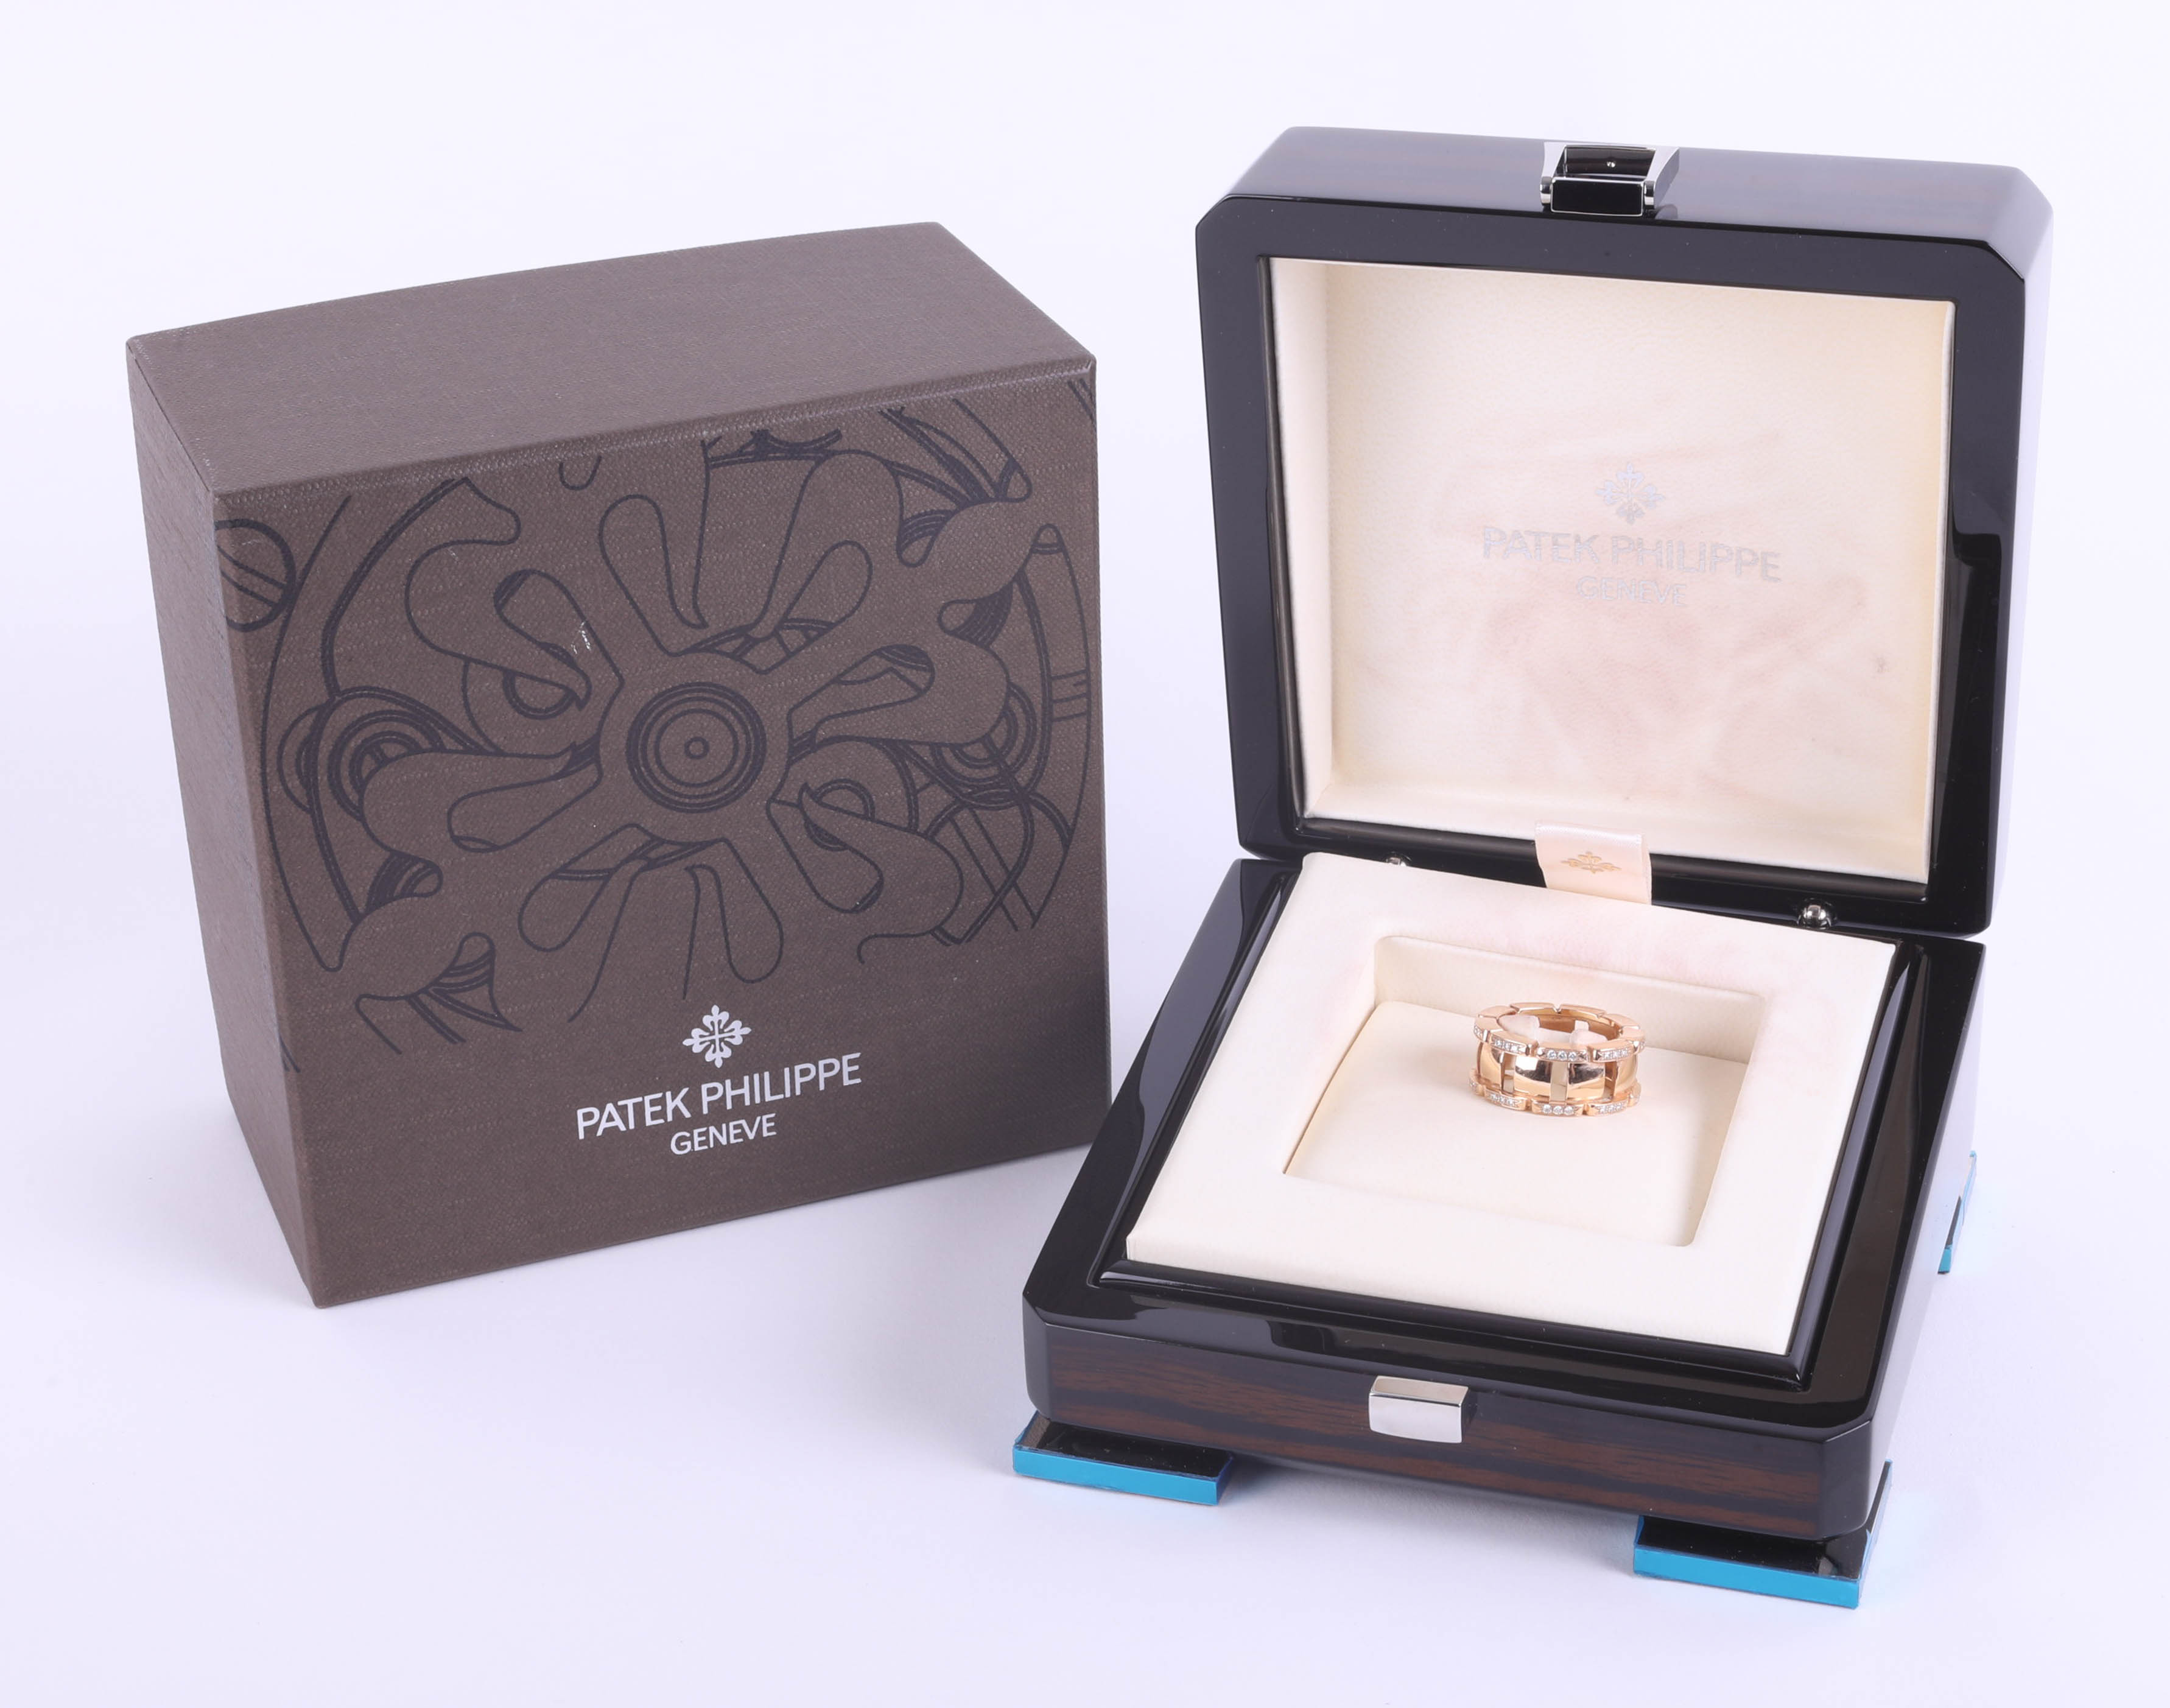 Lot 032 - Patek Philippe, a fine 18ct and diamond ring, marked 56 750 PP Company, size O/P, with box, outer